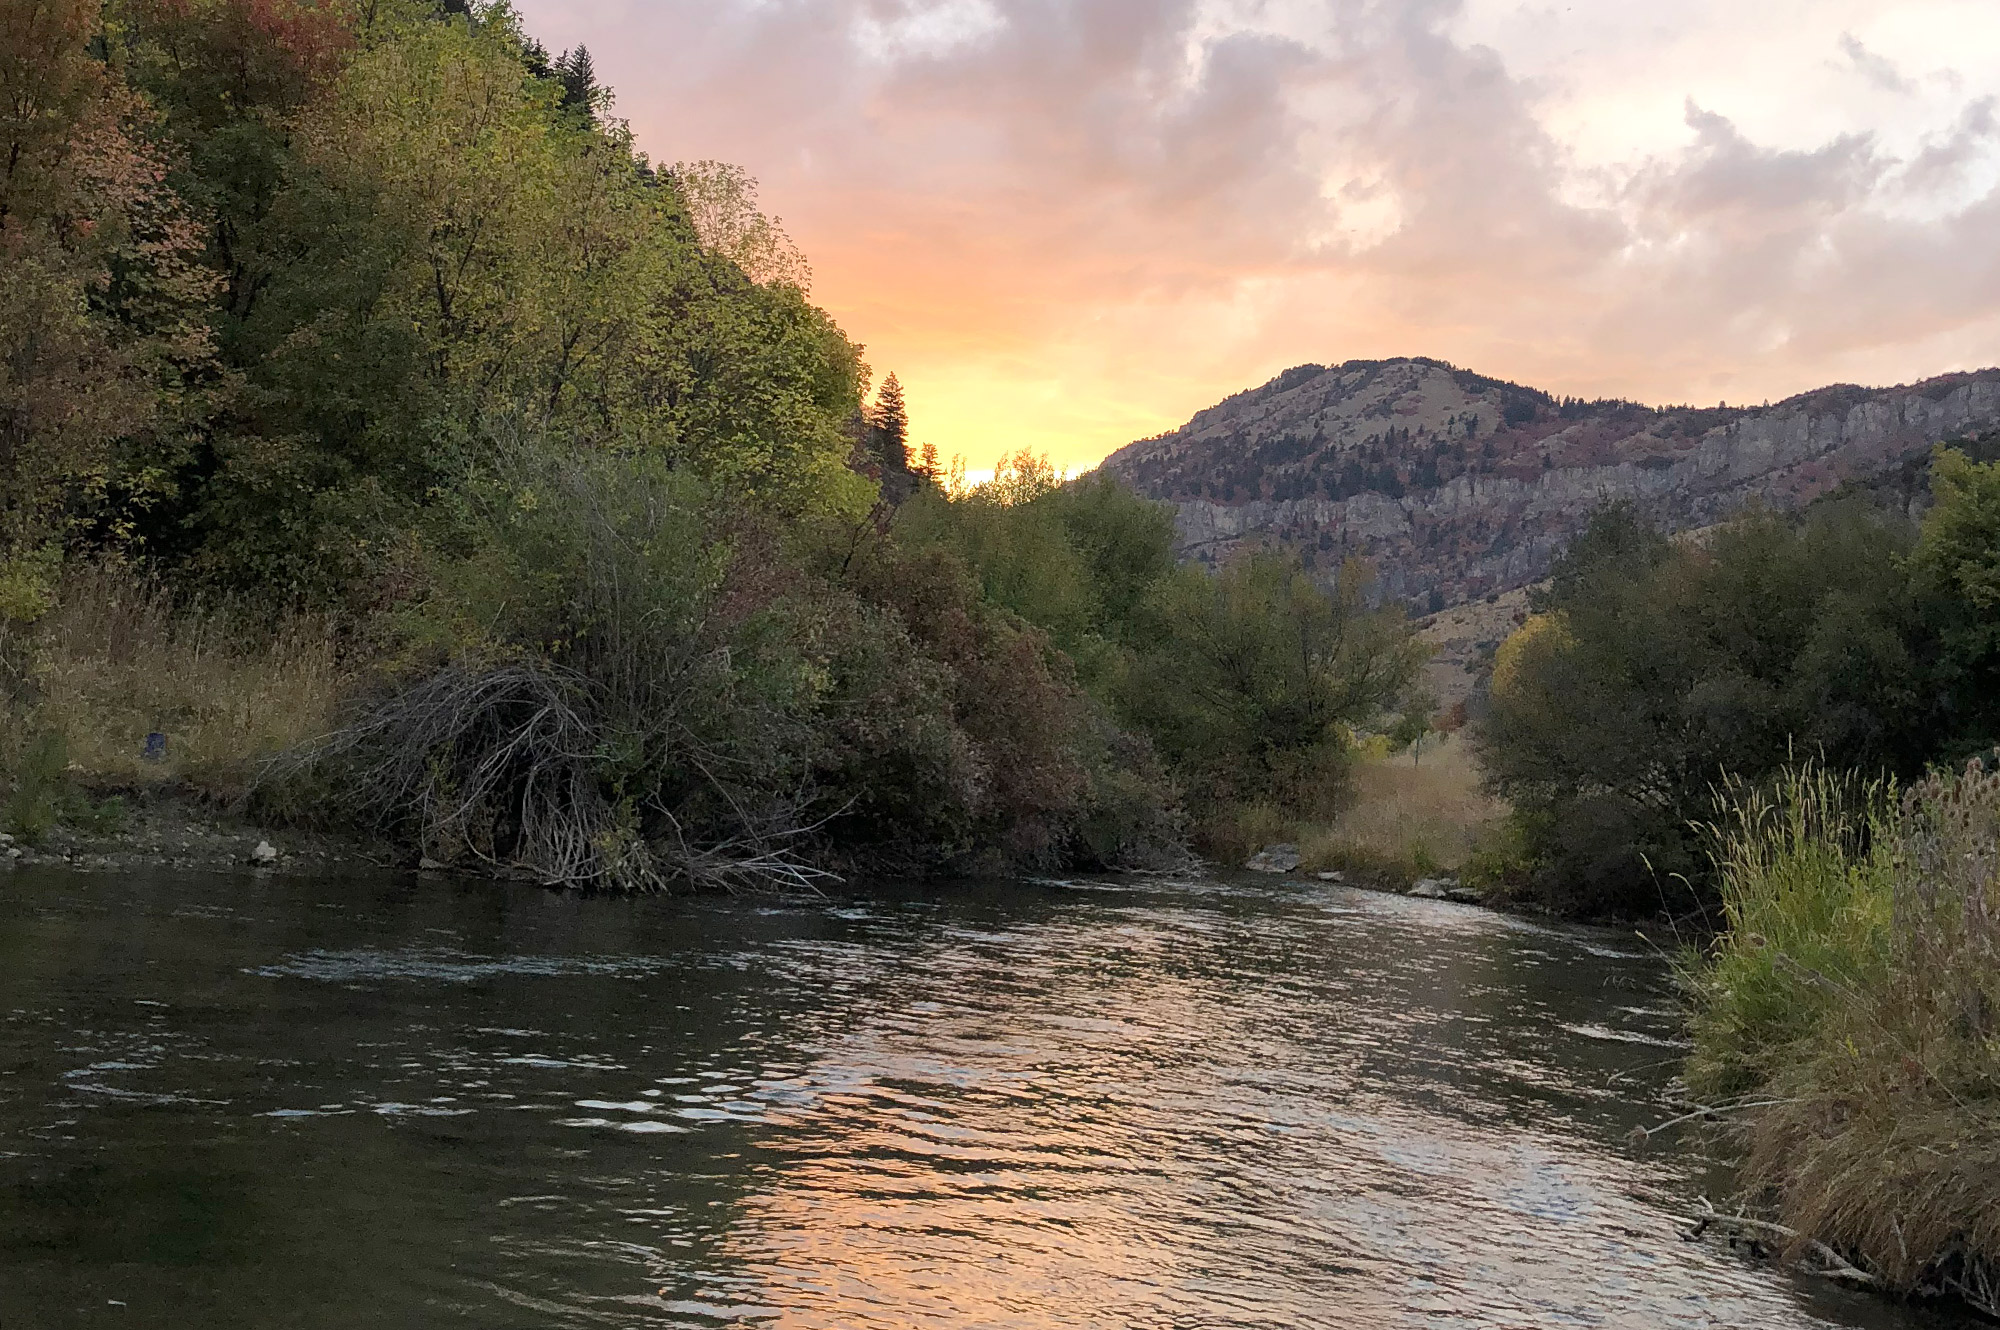 Black Smith Fork River, Utah sunset